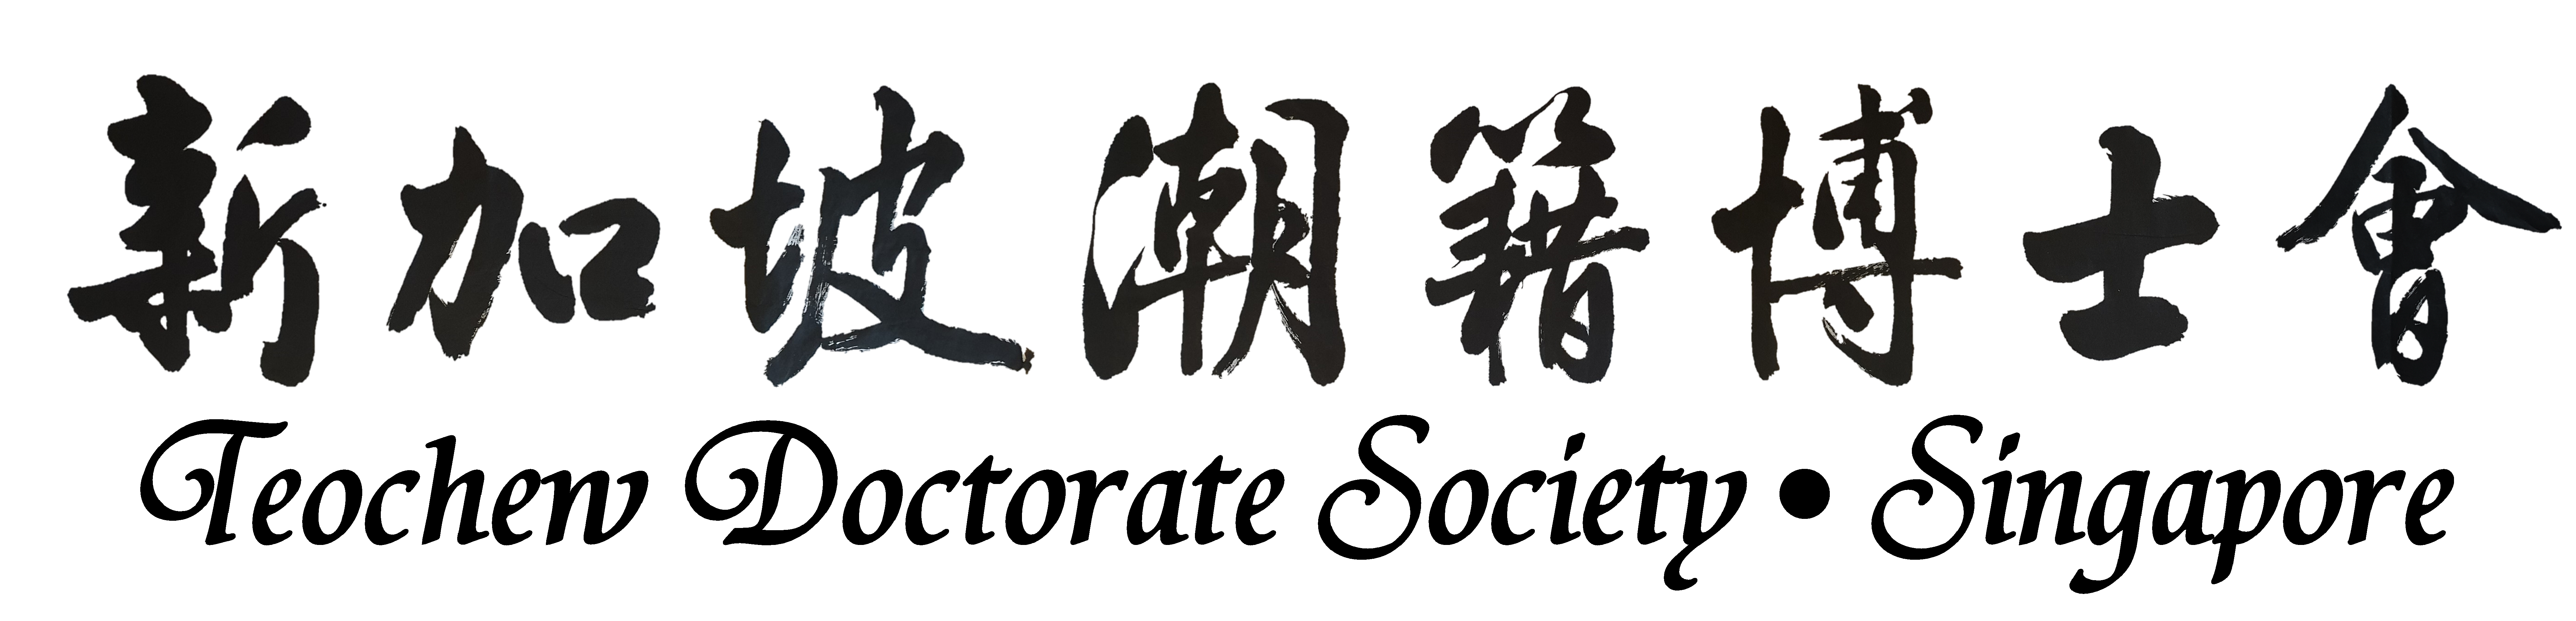 Teochew Doctorate Society, Singapore